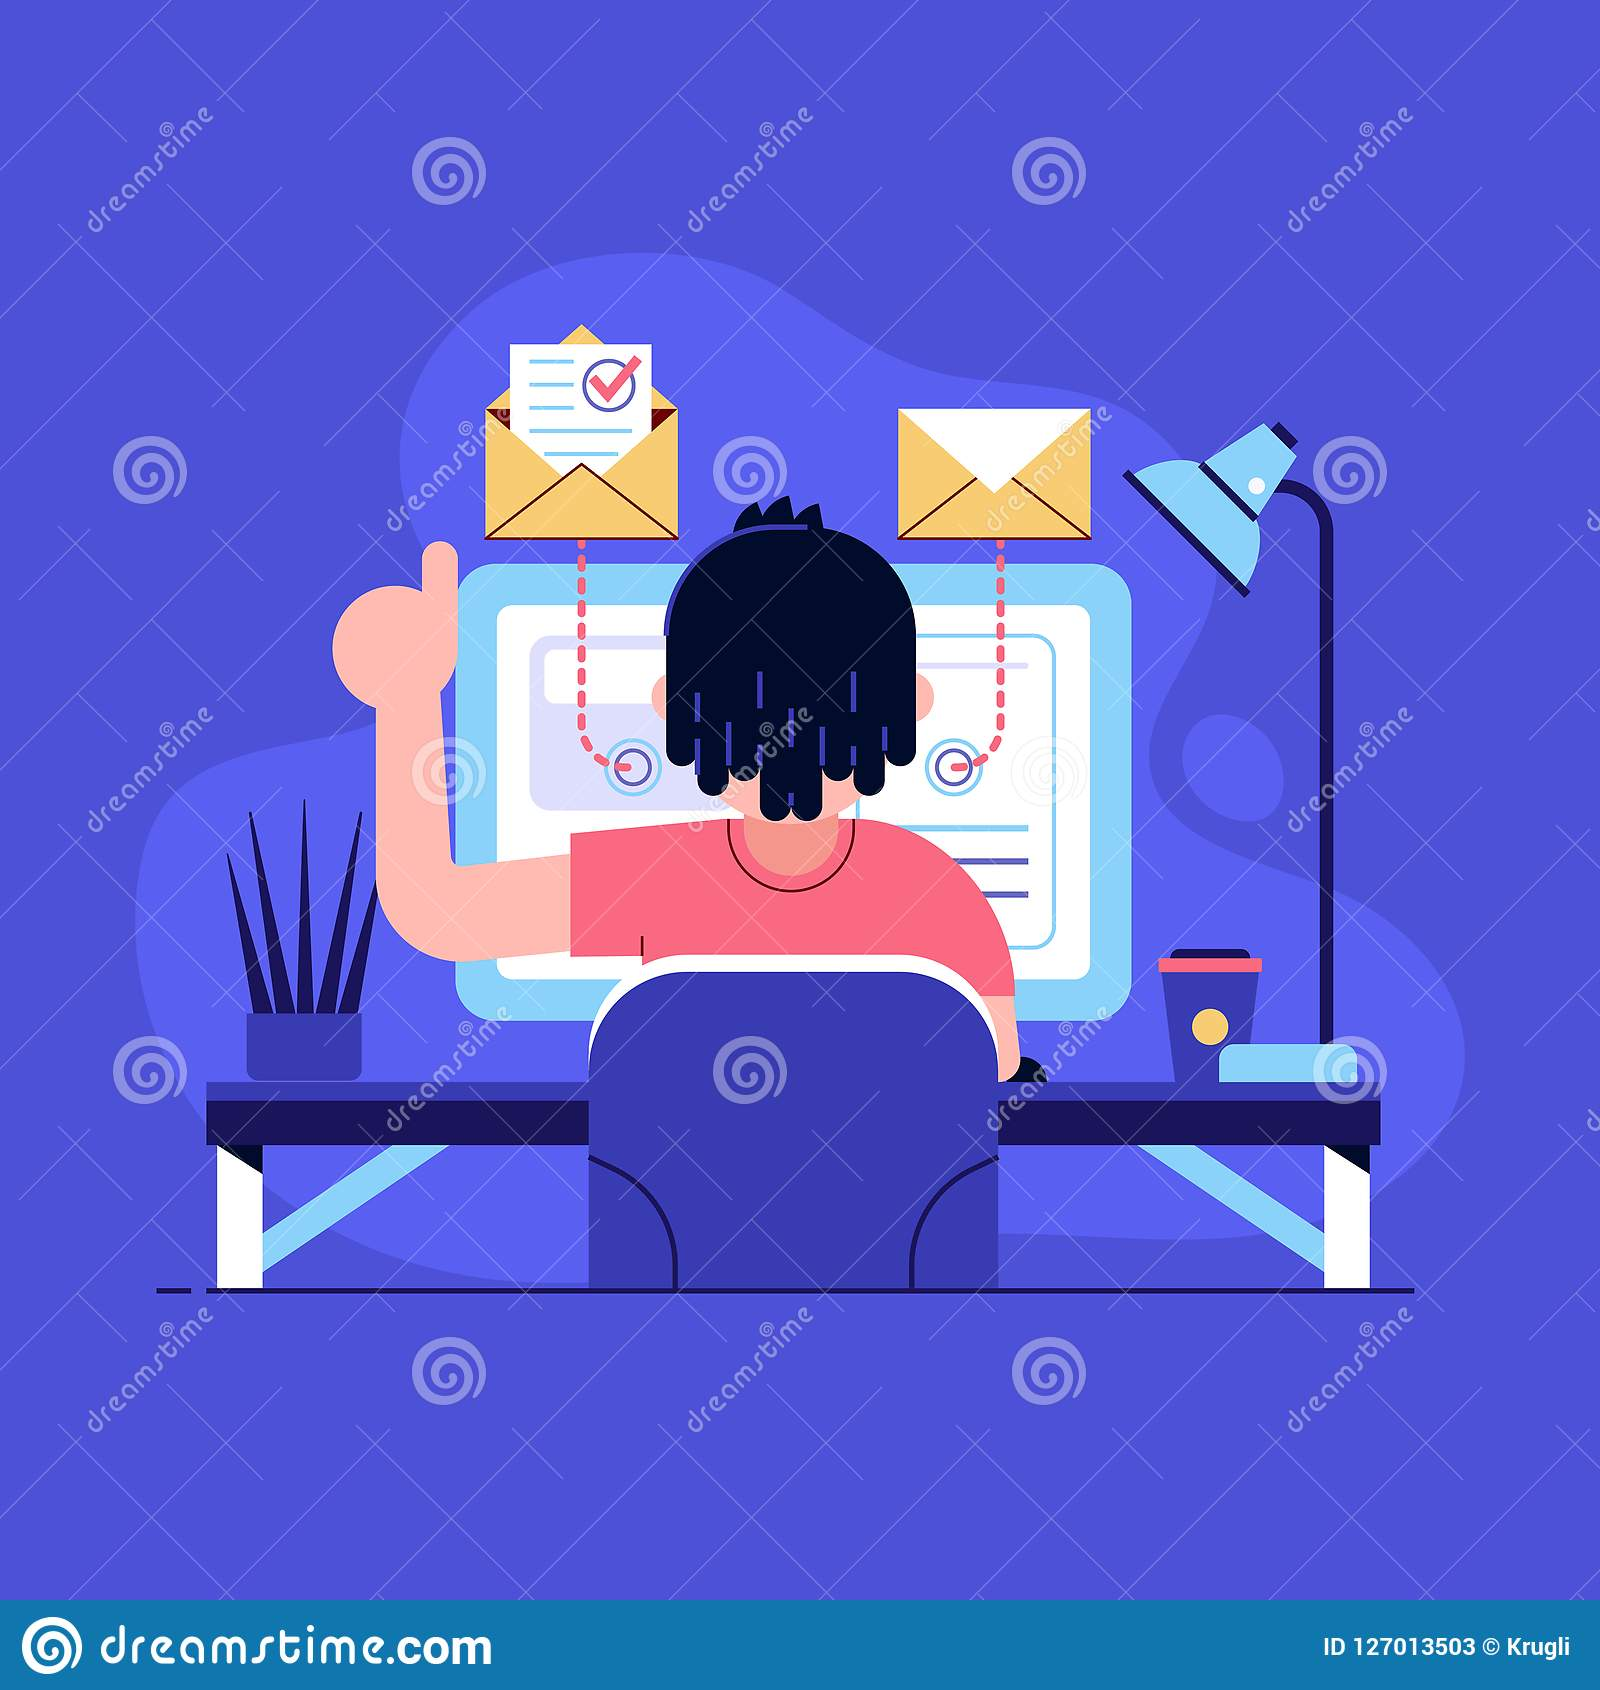 Freelancer Working on Laptop at Home